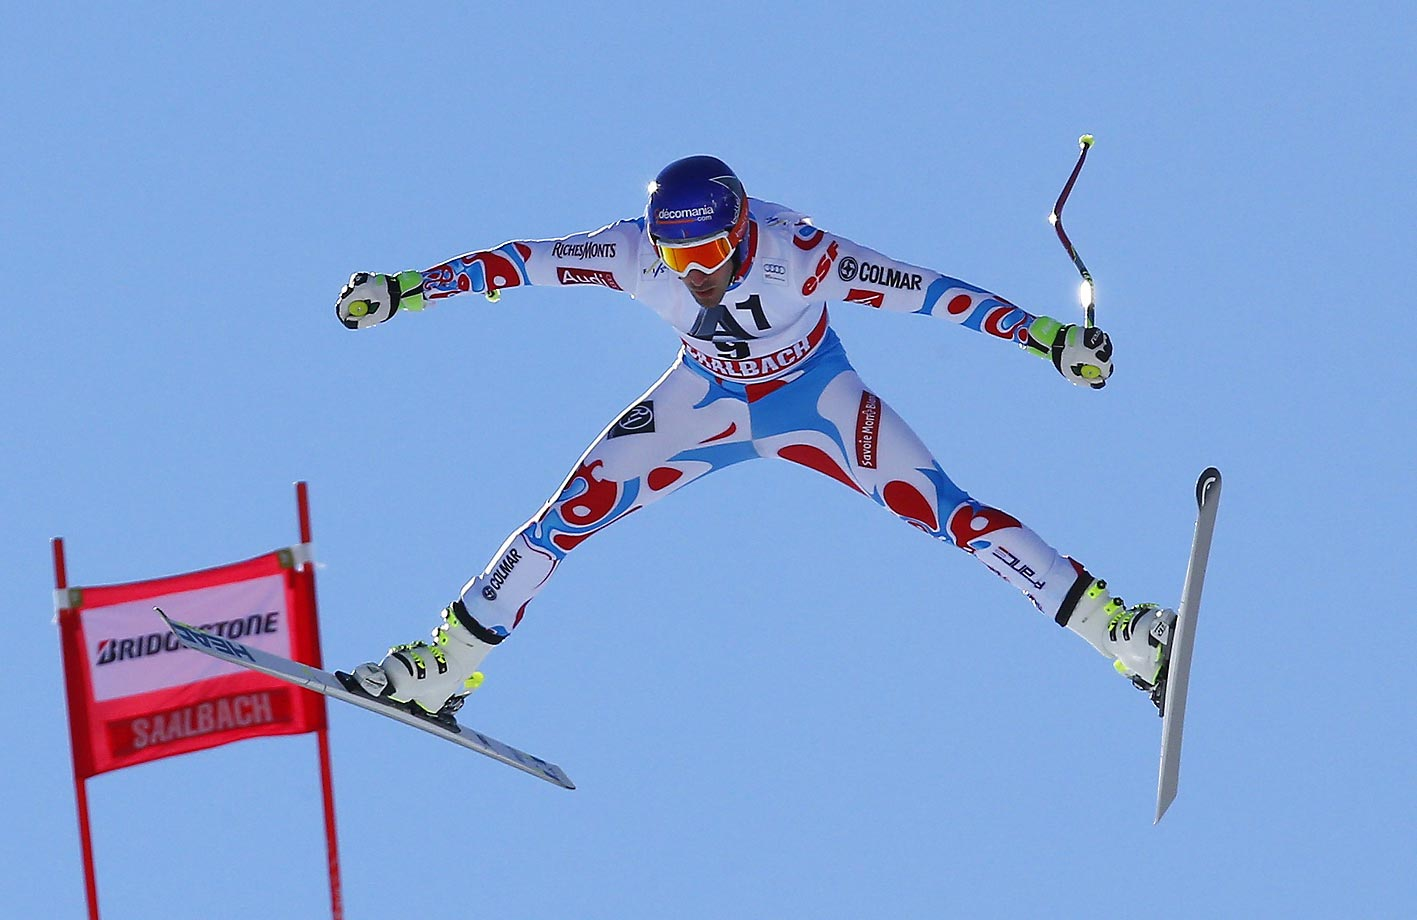 Adrien Theaux of France is airborne during his downhill training in Saalbach Hinterglemm, Austria.